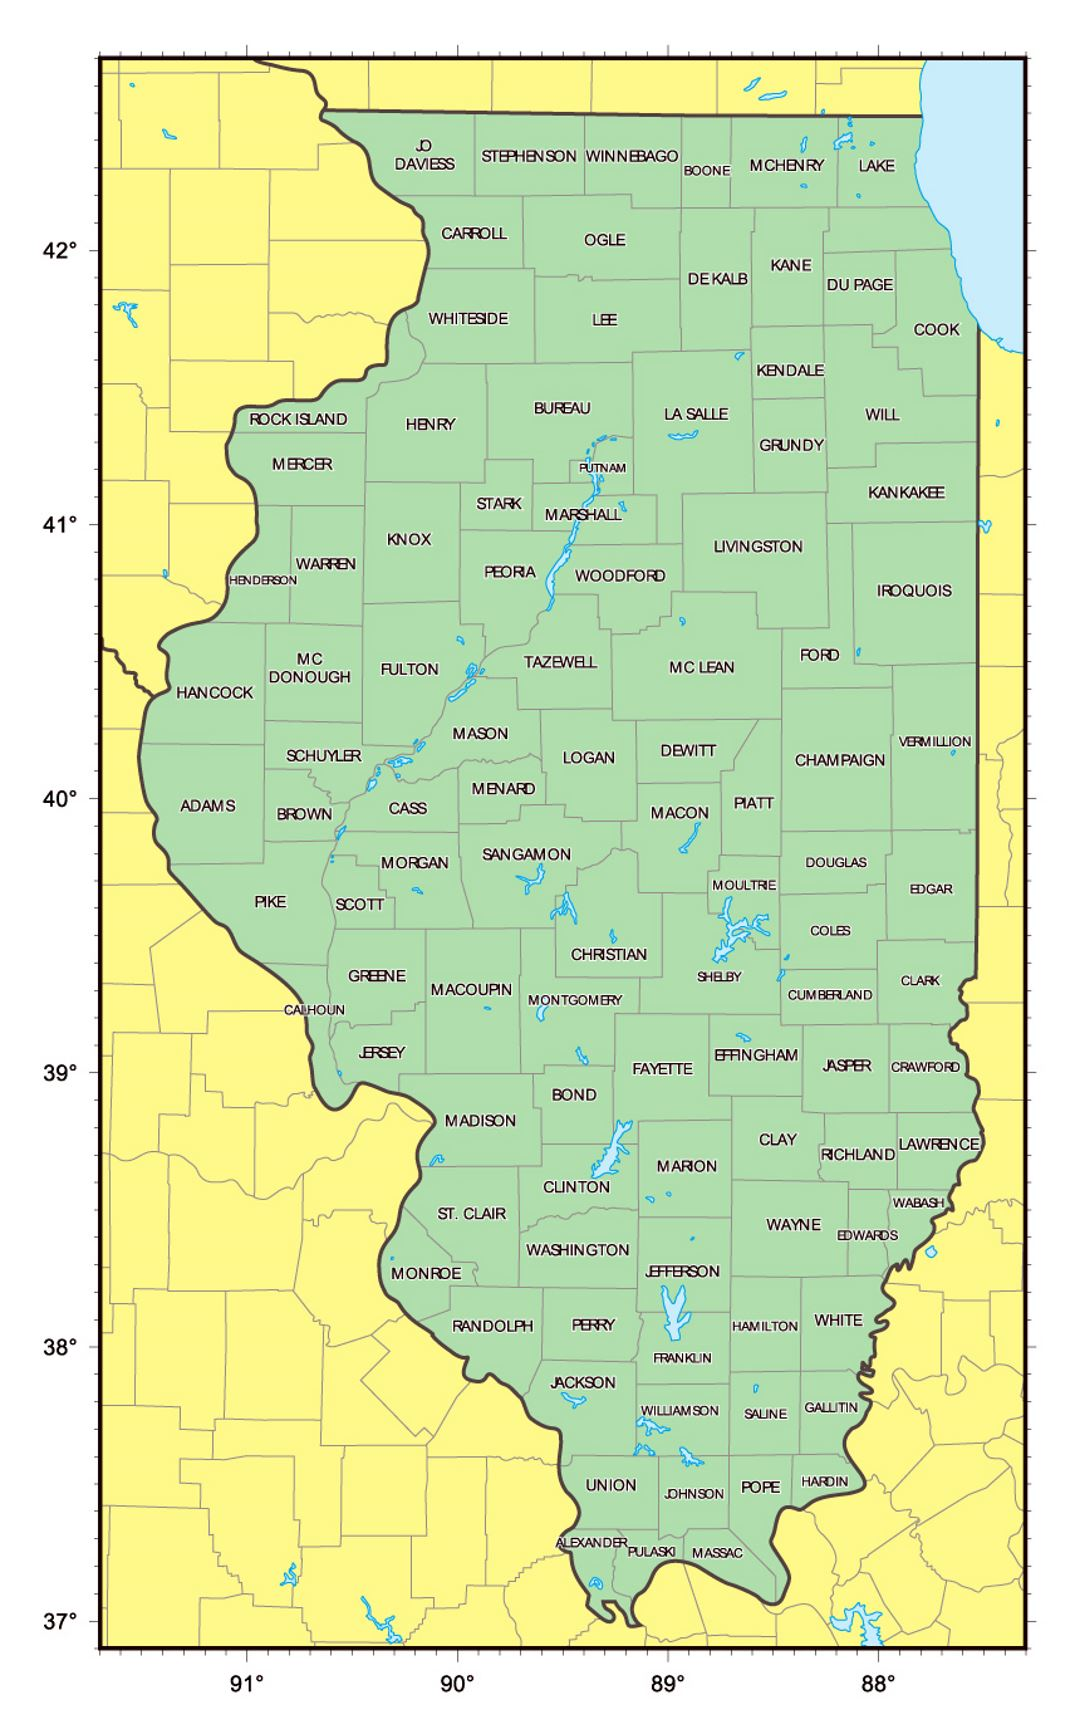 Detailed administrative map of Illinois state